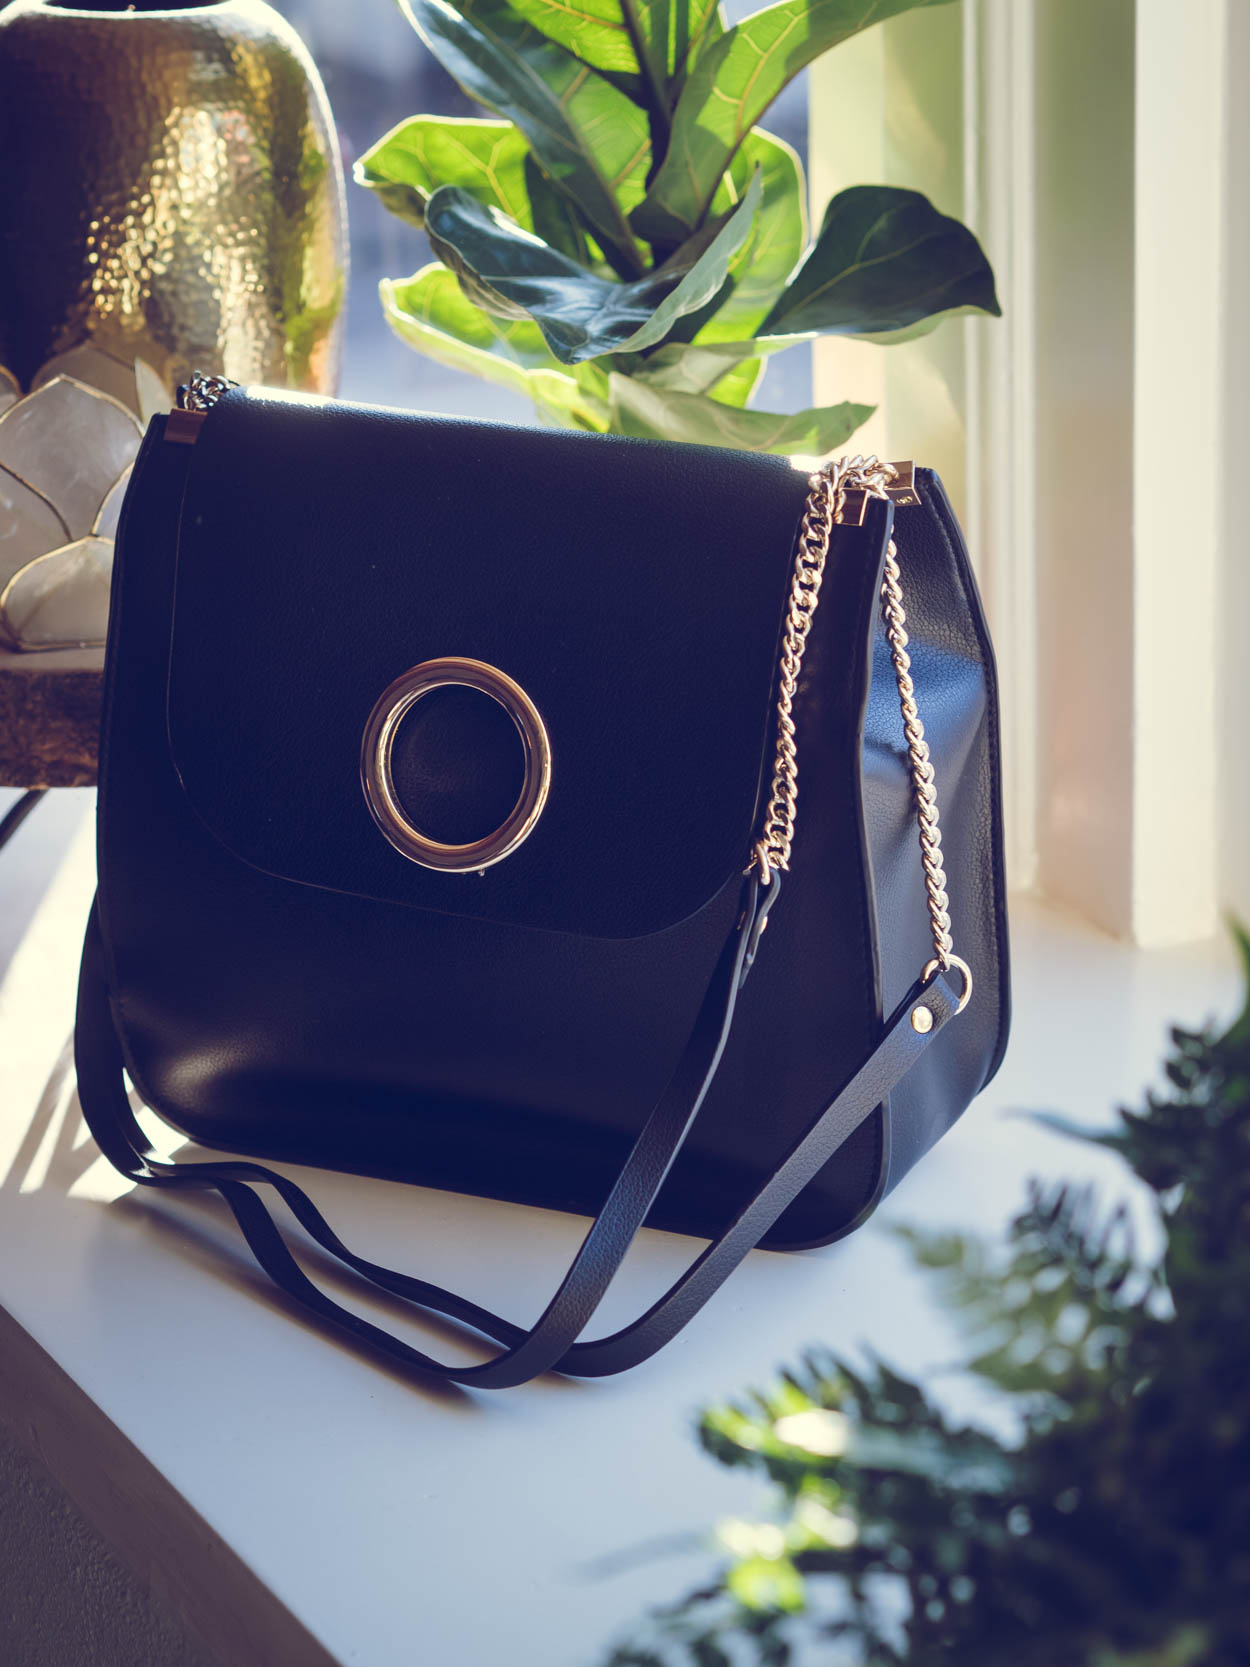 5 CHIC AFFORDABLE BLACK FALL BAGS THAT LOOK LUXURIOUS | THECHICITALIAN | The best high street fall bags out there right now